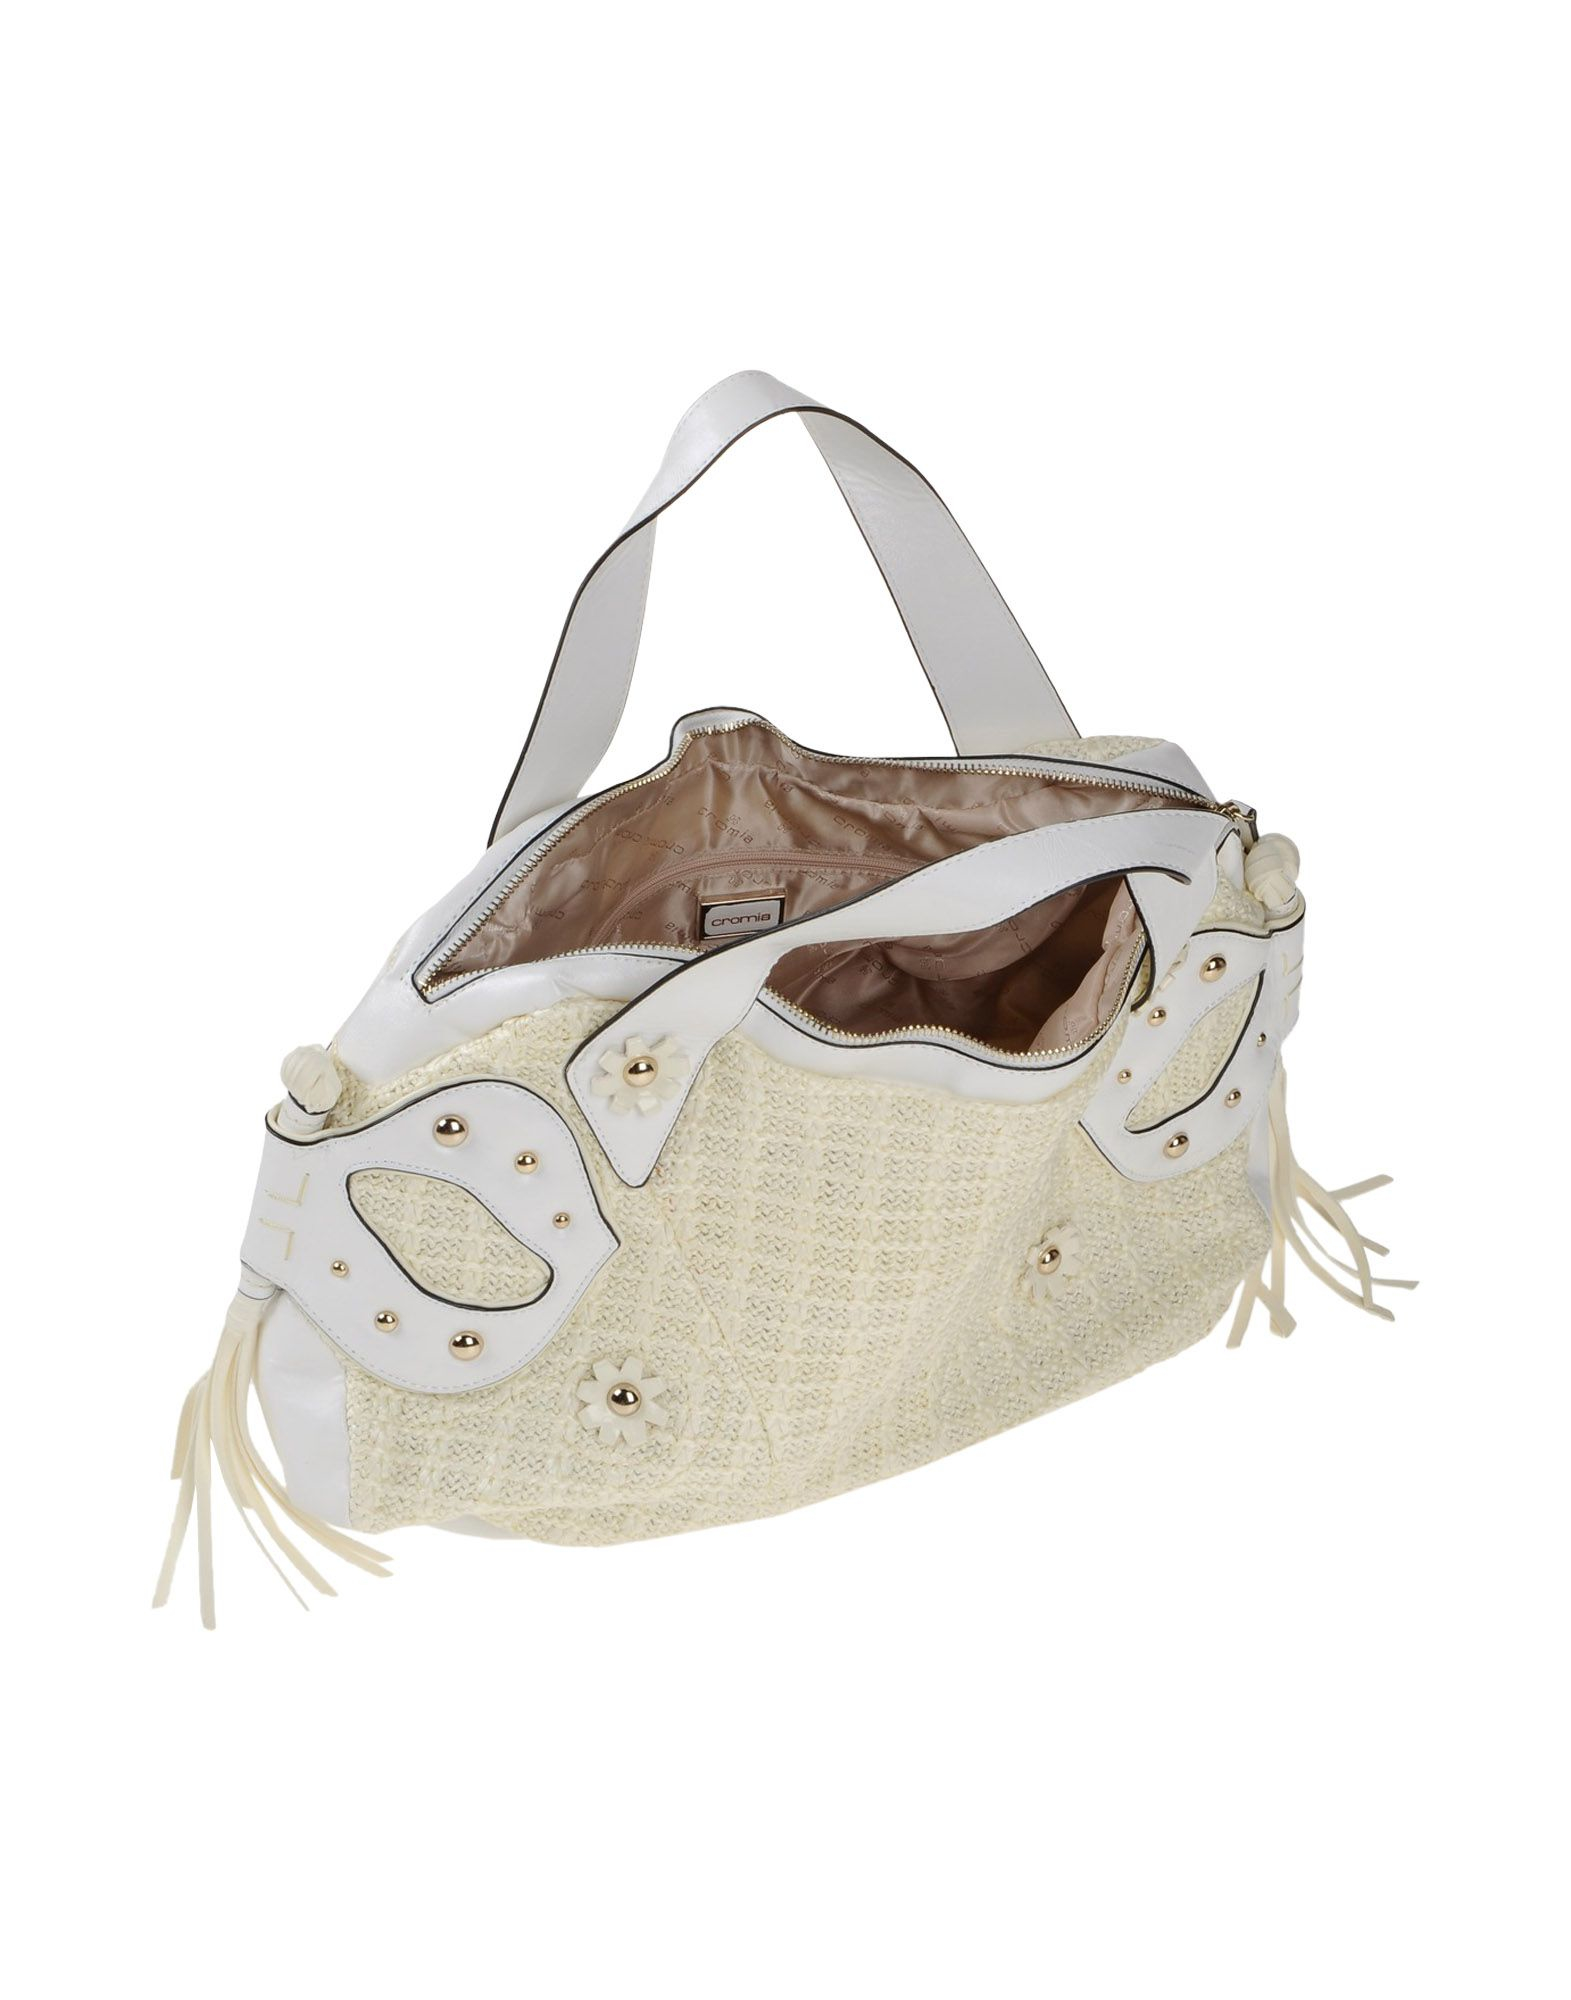 Crosia Handbags Latest Design : Cromia Handbag in White Lyst